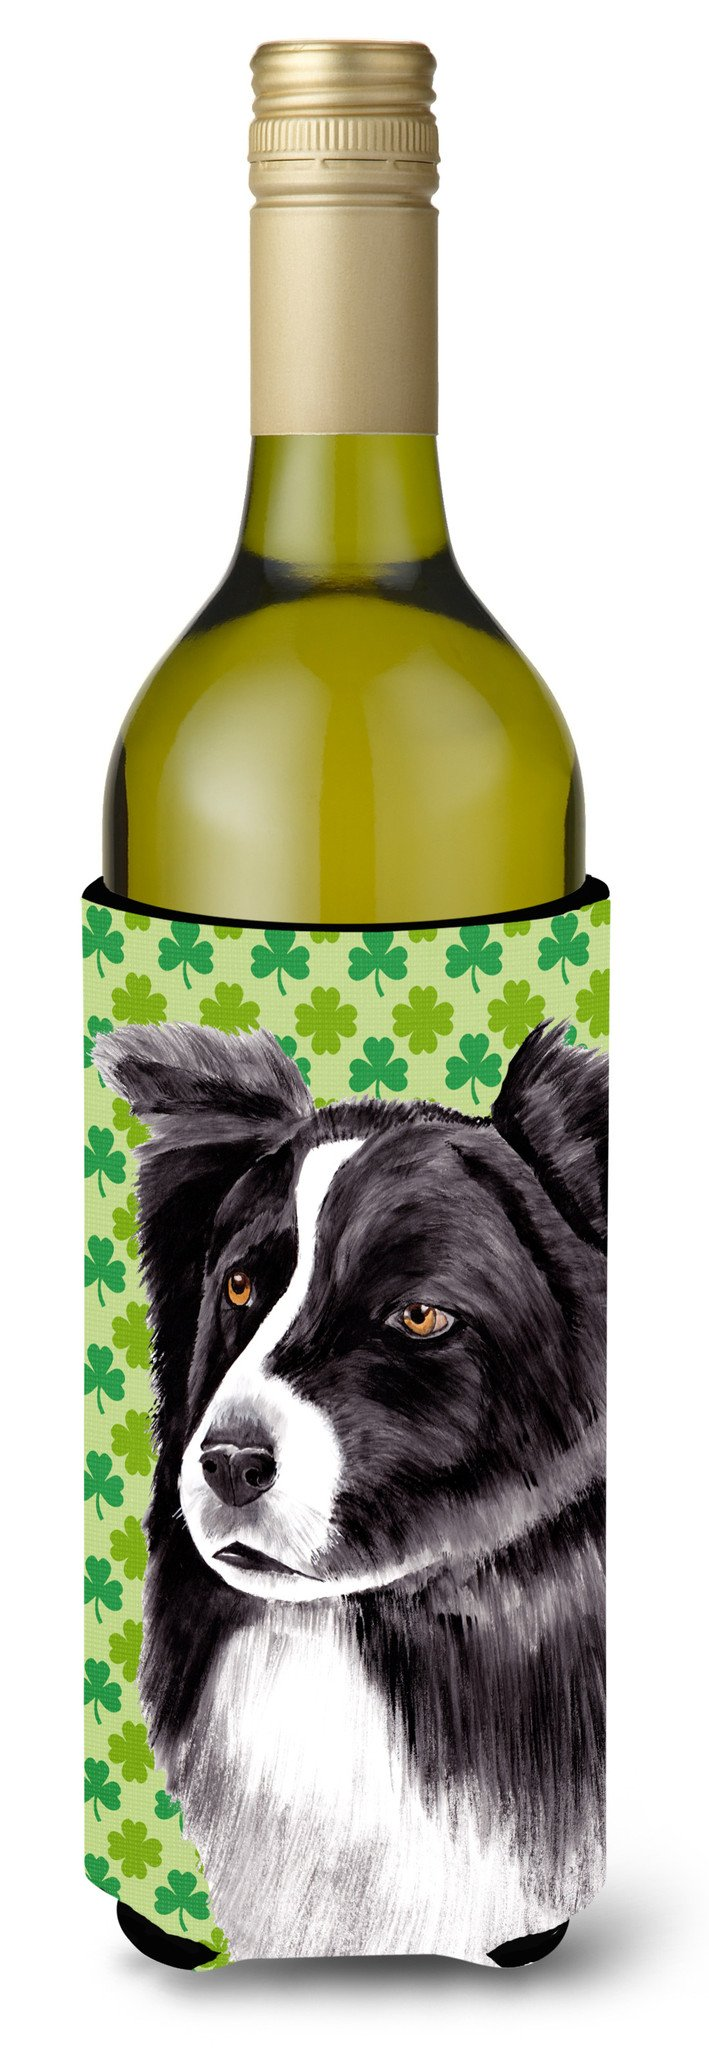 Border Collie St. Patrick's Day Shamrock Portrait Wine Bottle Beverage Insulator Beverage Insulator Hugger by Caroline's Treasures